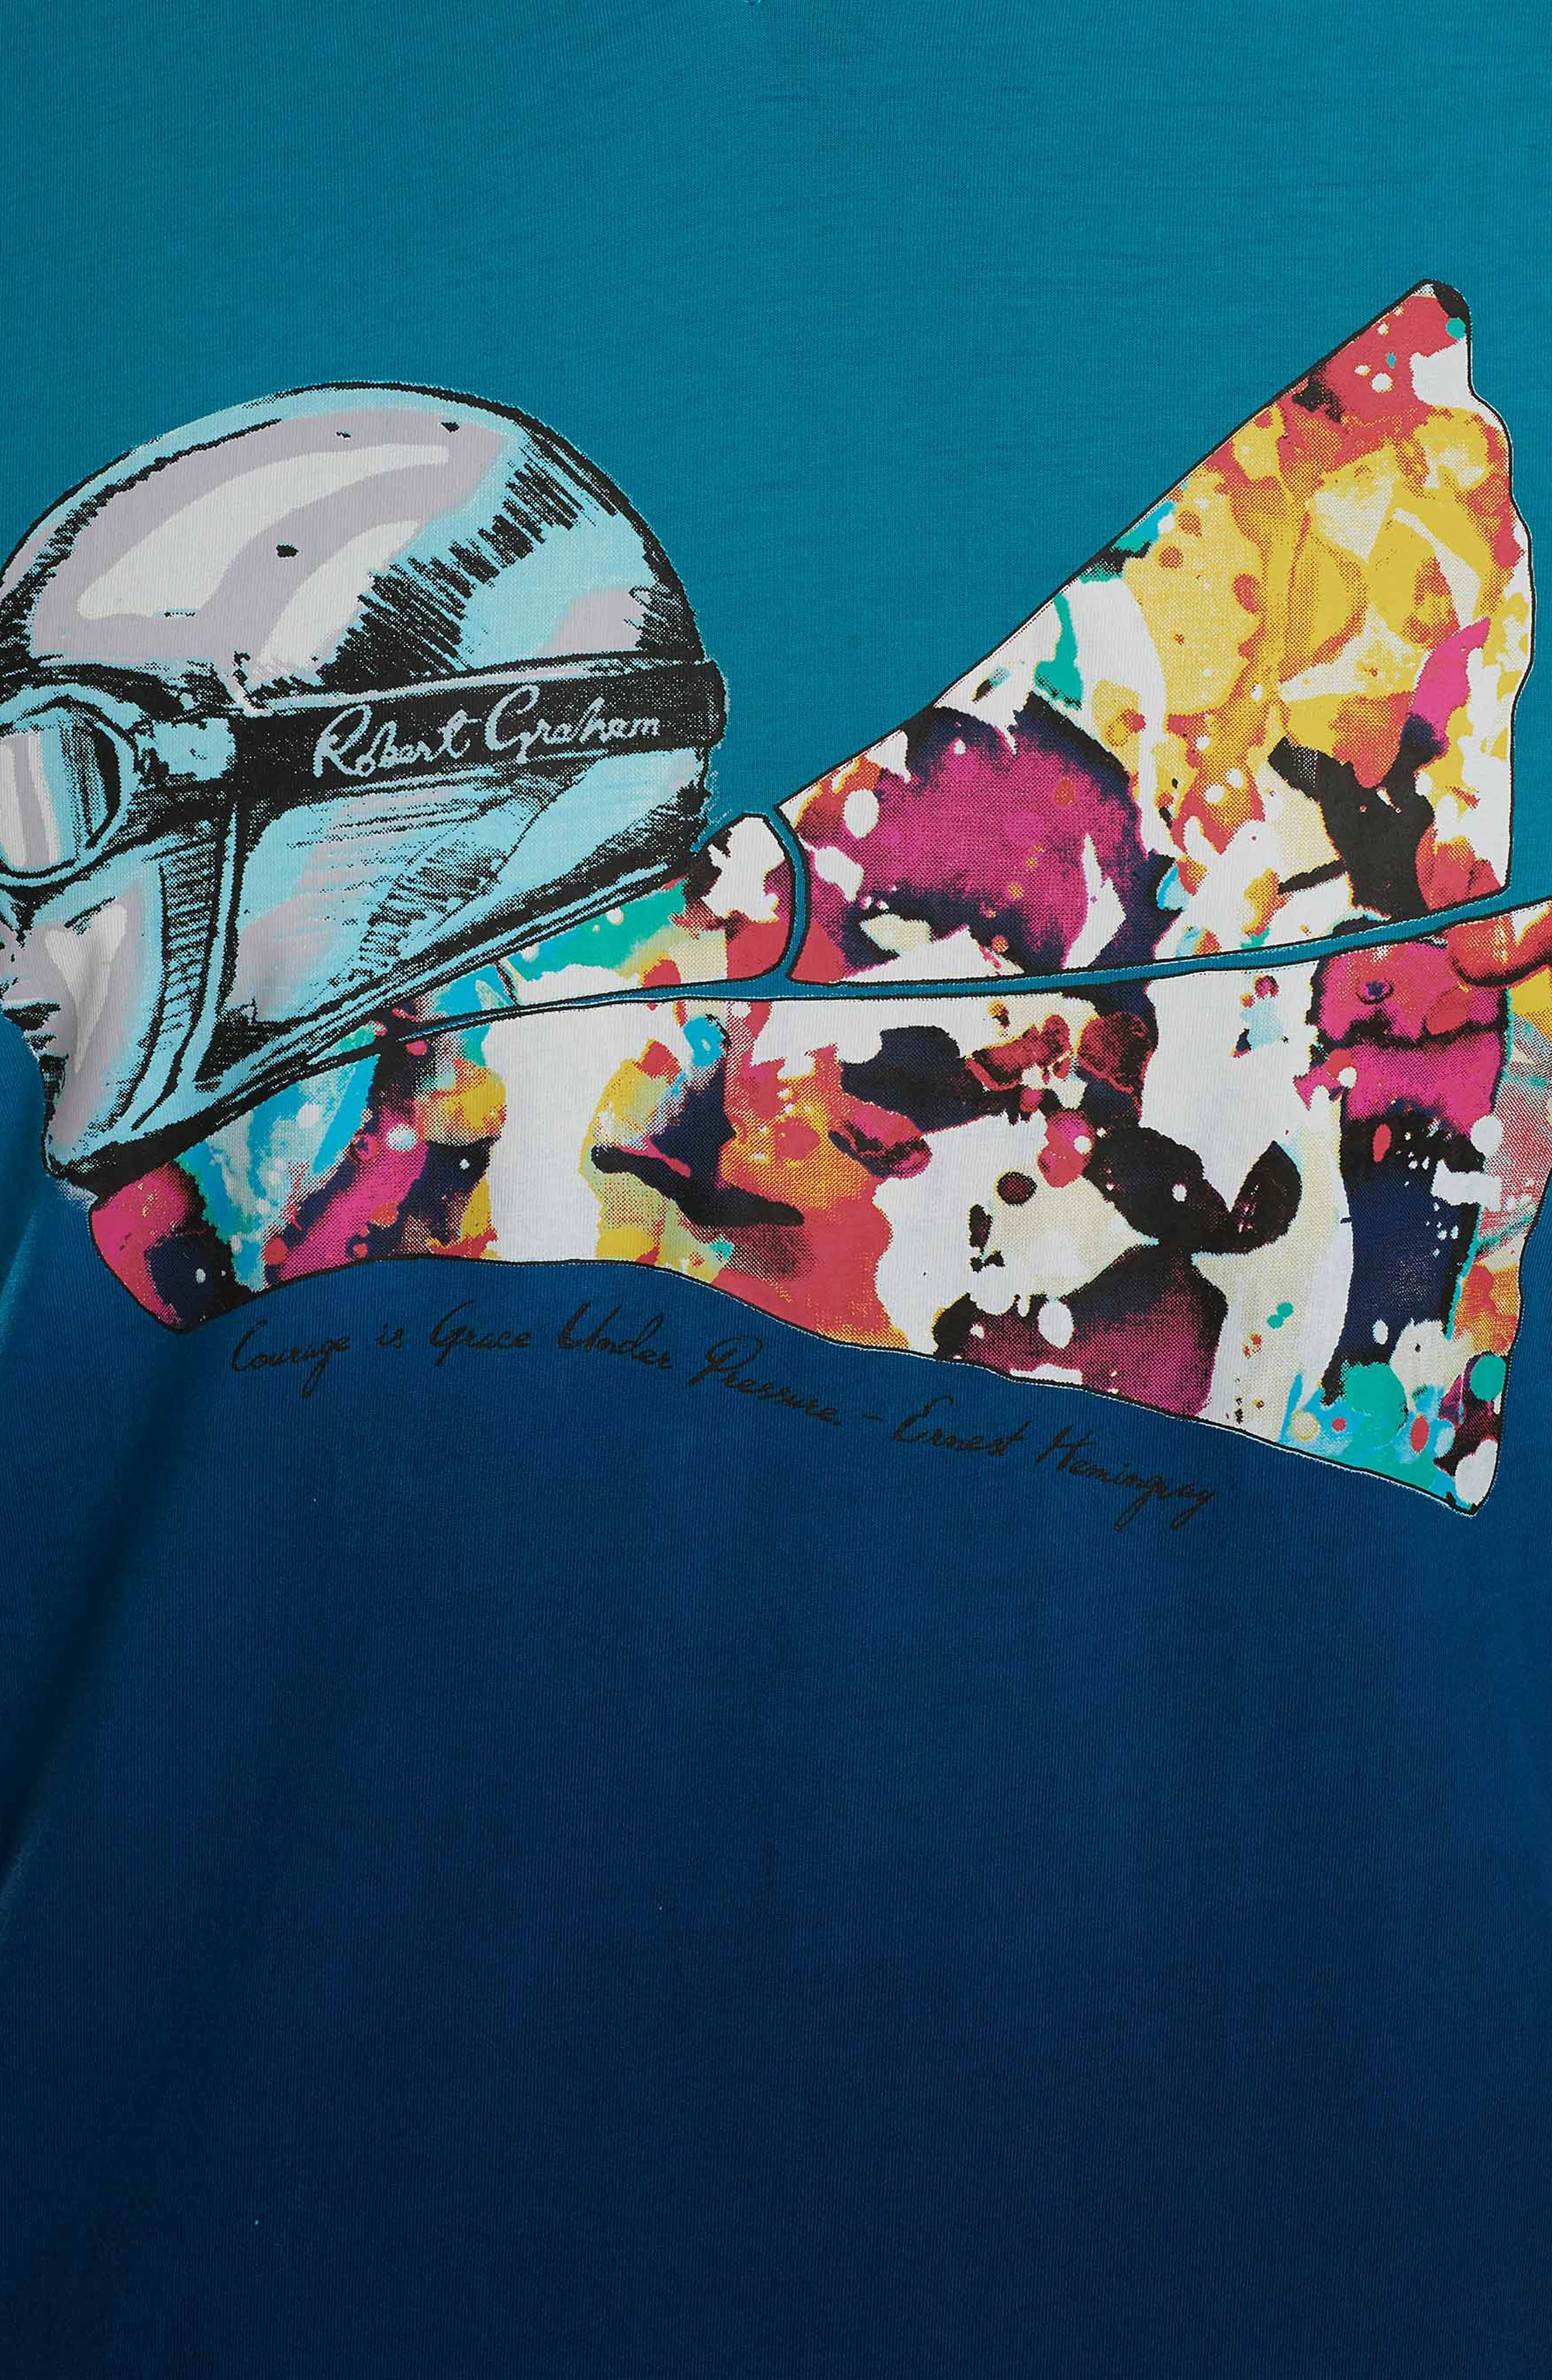 Into the Wind Knit Graphic T-Shirt,                             Alternate thumbnail 3, color,                             Teal